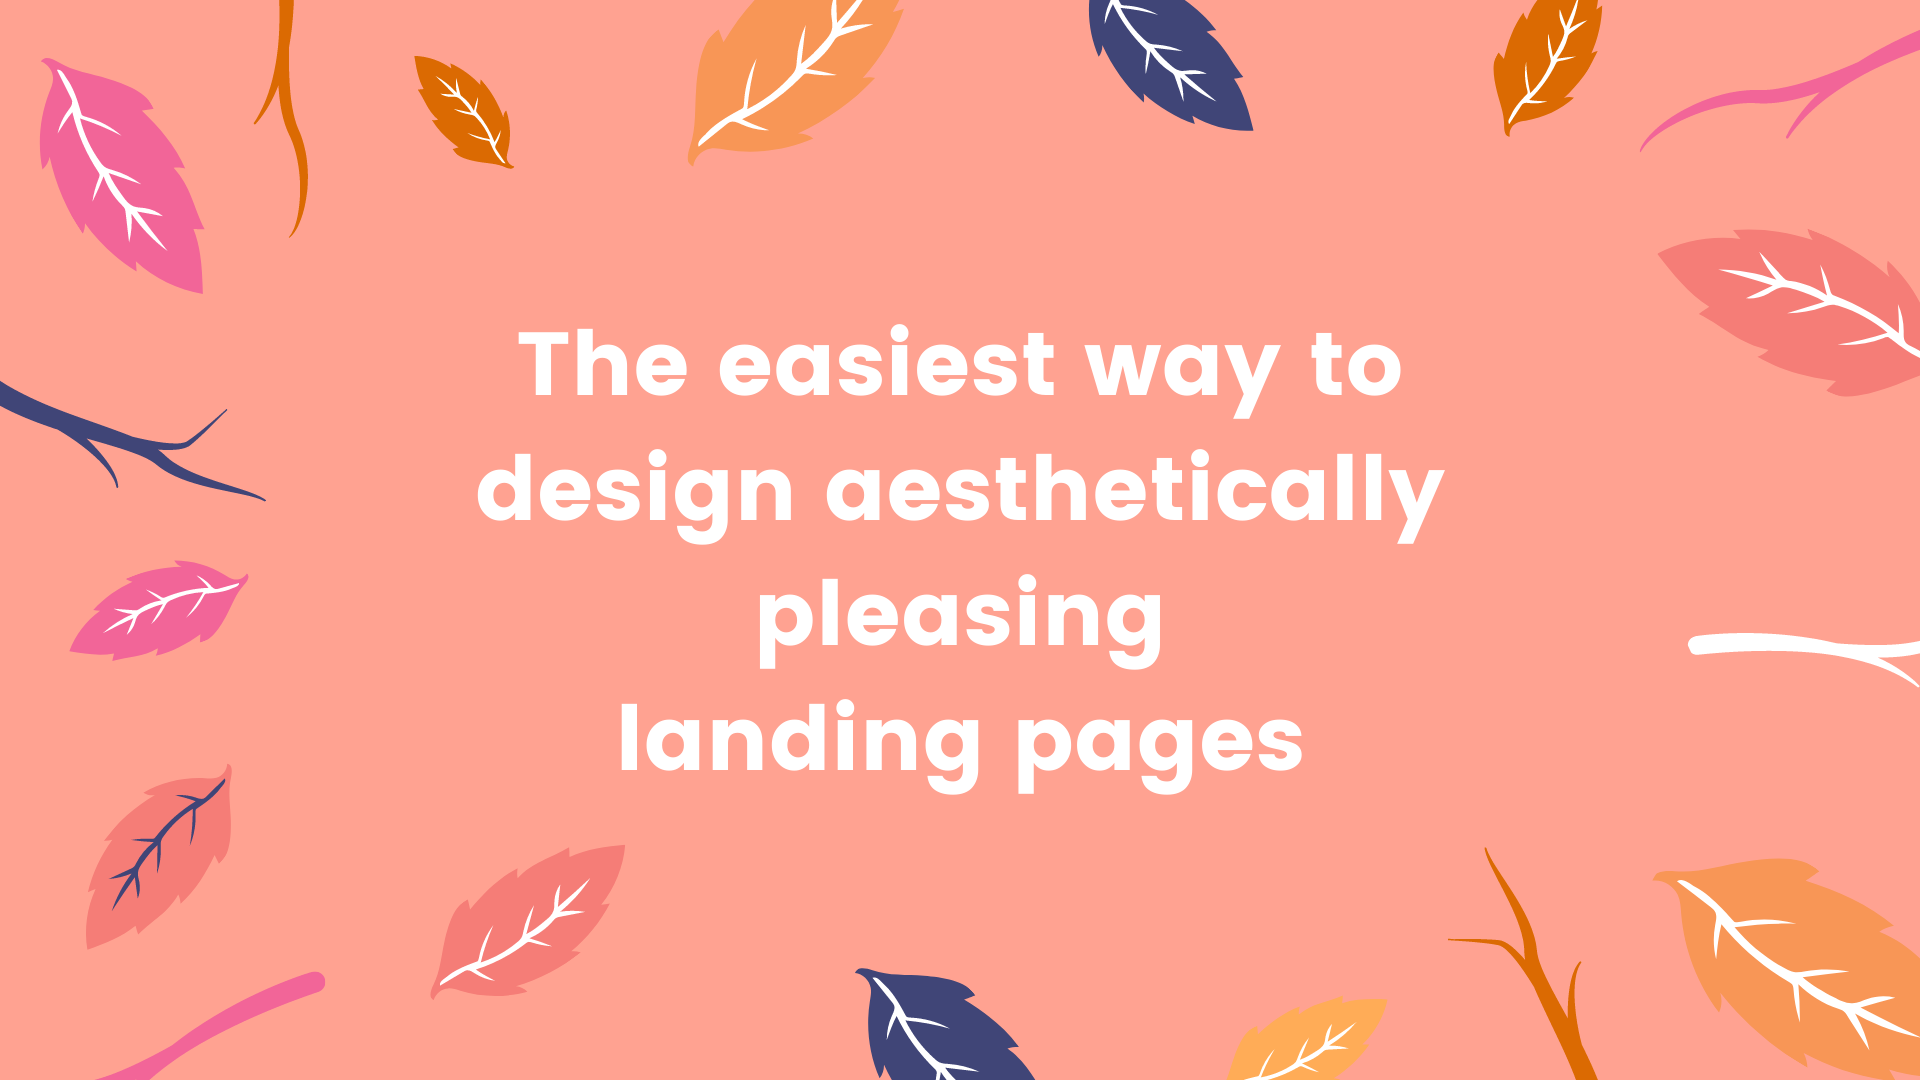 How to Design Aesthetically Pleasing Landing Pages